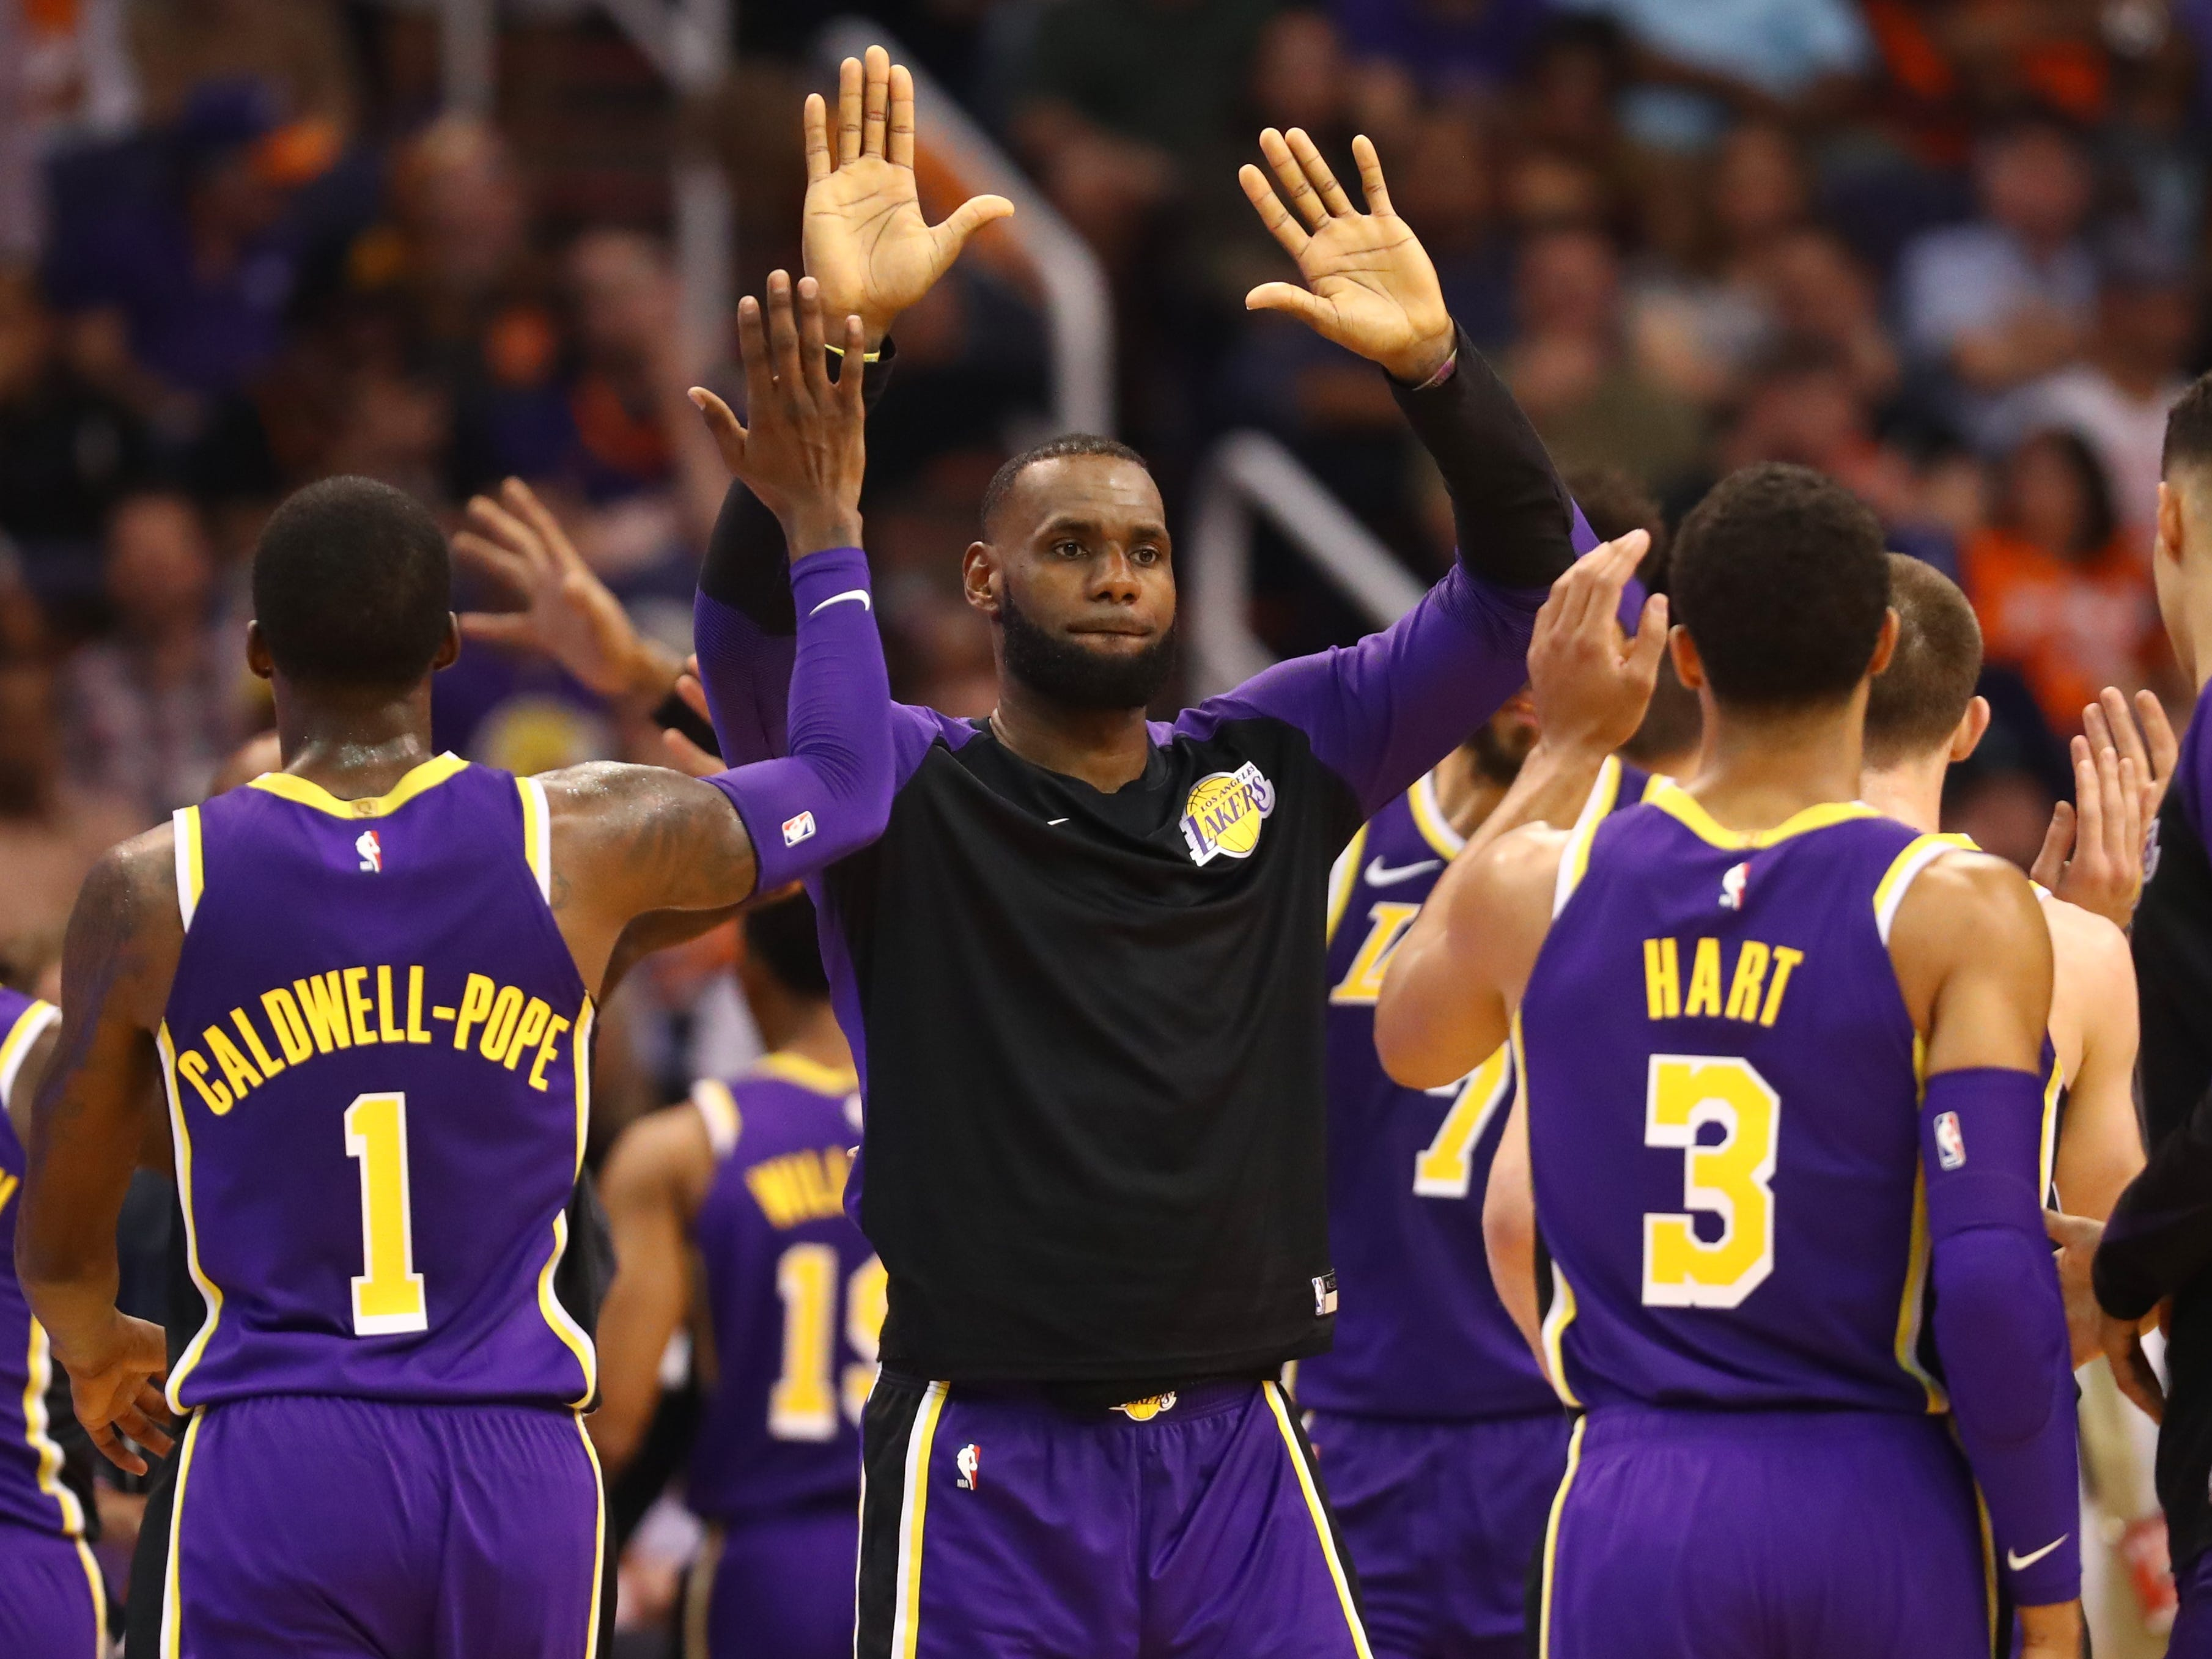 Oct. 24, 2018: It took four tries, but after three straight losses to start the season, LeBron James and the Lakers celebrated their first win against the Suns in Phoenix.